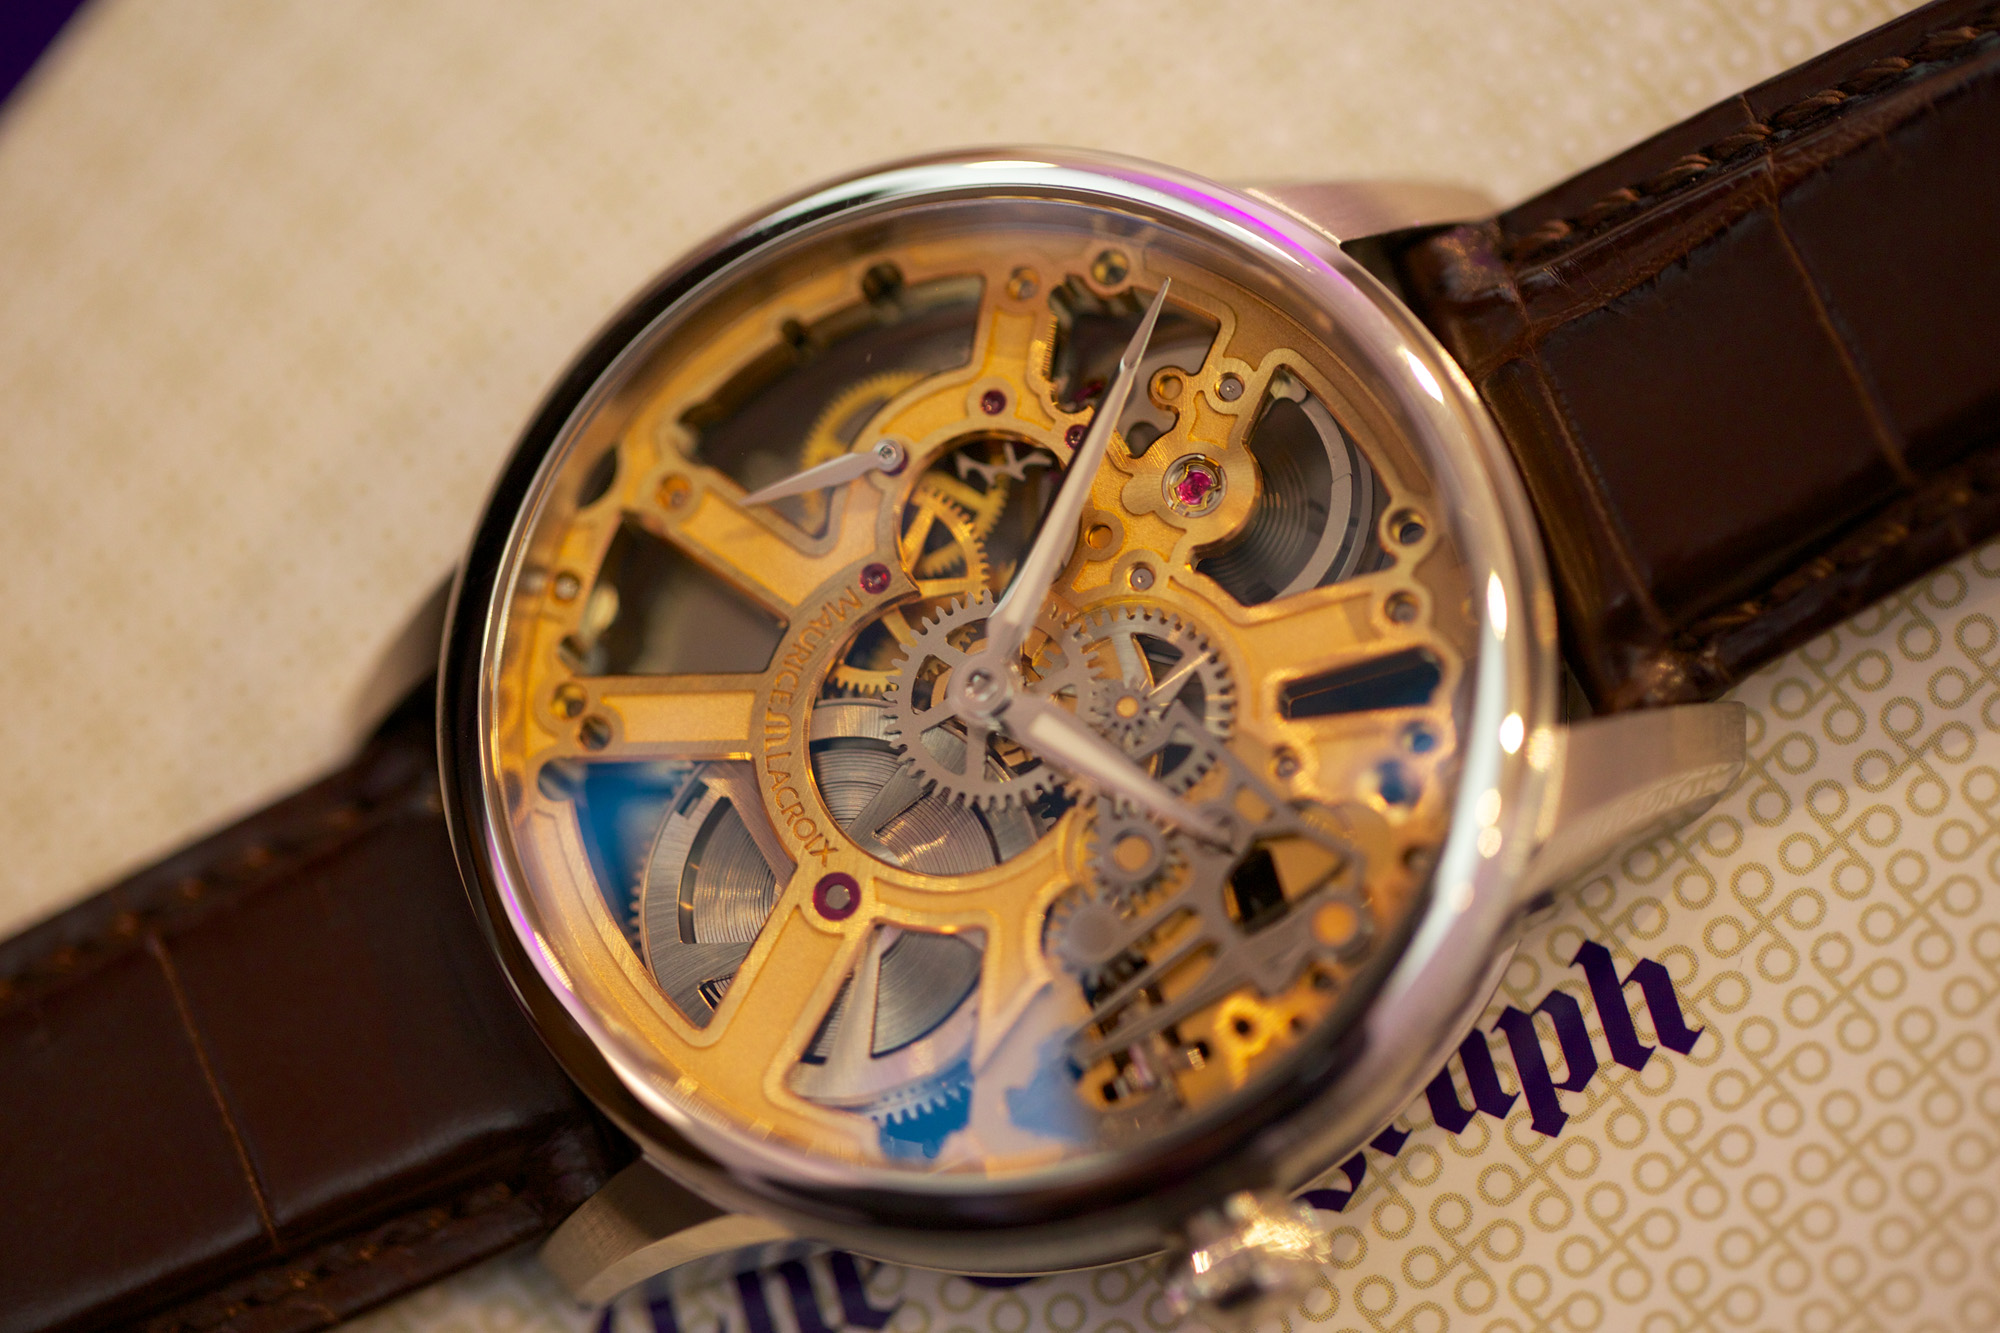 Maurice Lacroix Masterpiece Squelette - Watch